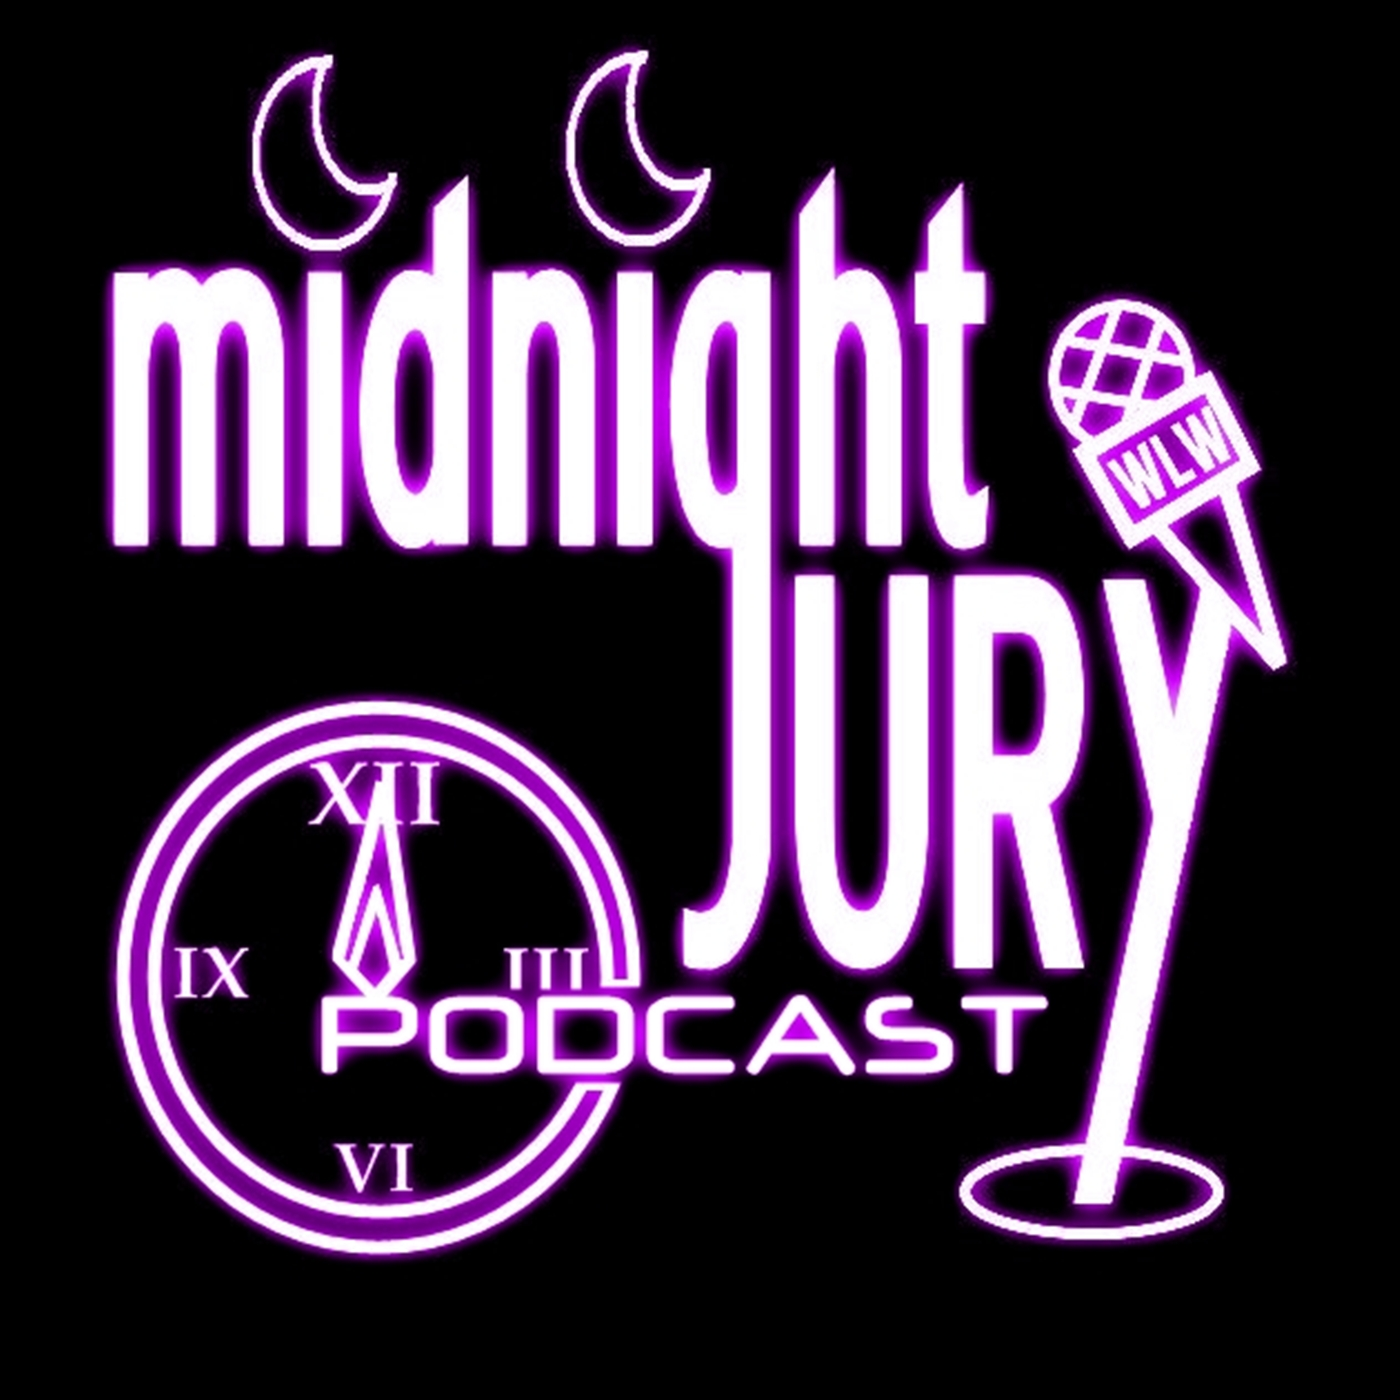 Midnight Jury